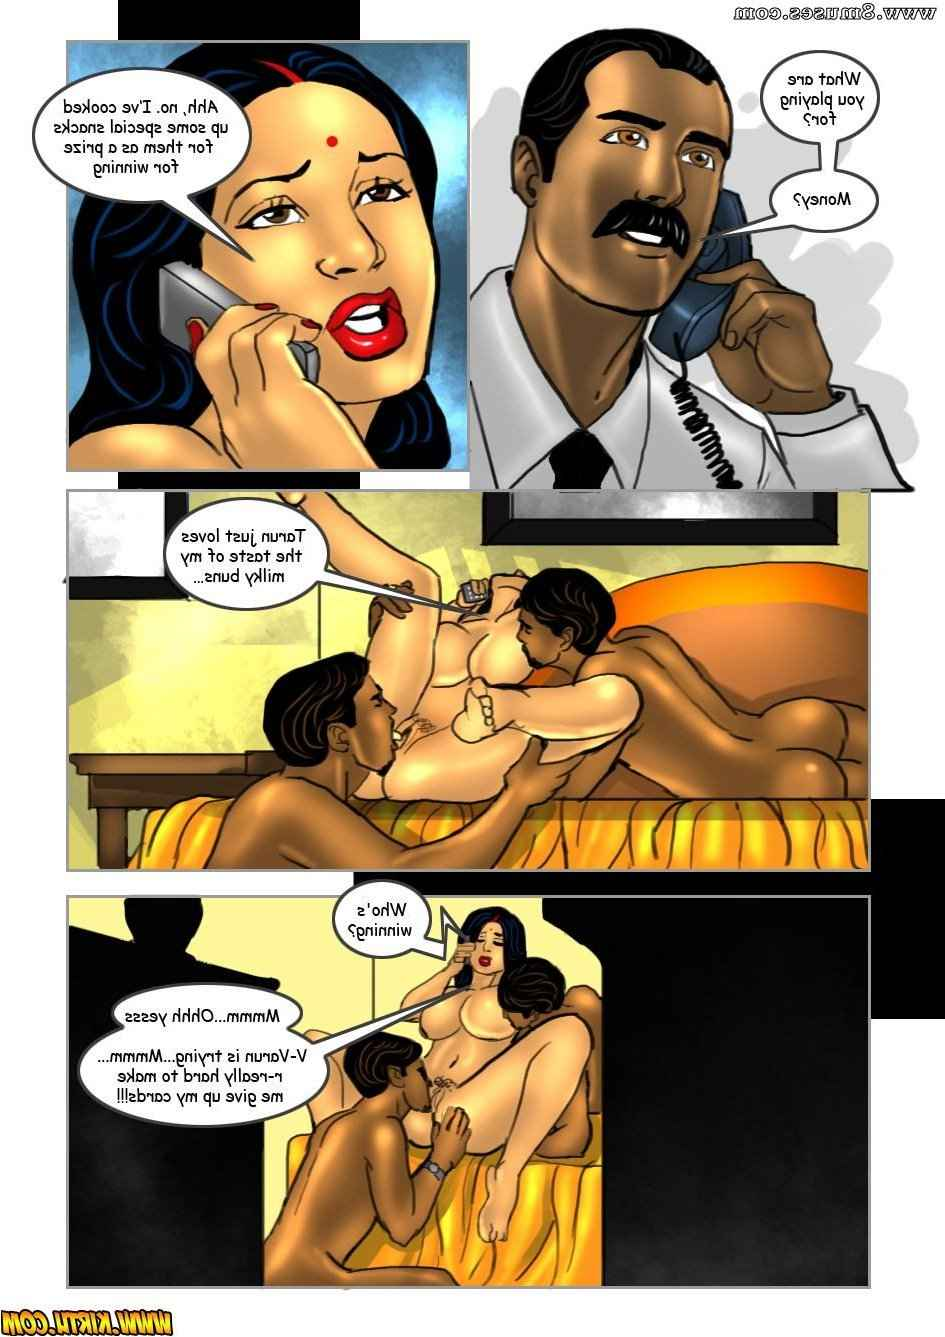 Kirtu_com-Comics/Savita-Bhabhi/Savita-Bhabhi-Episode-17-Double-Trouble-Part-2 Savita_Bhabhi_-_Episode_17__Double_Trouble_Part_2__8muses_-_Sex_and_Porn_Comics_33.jpg